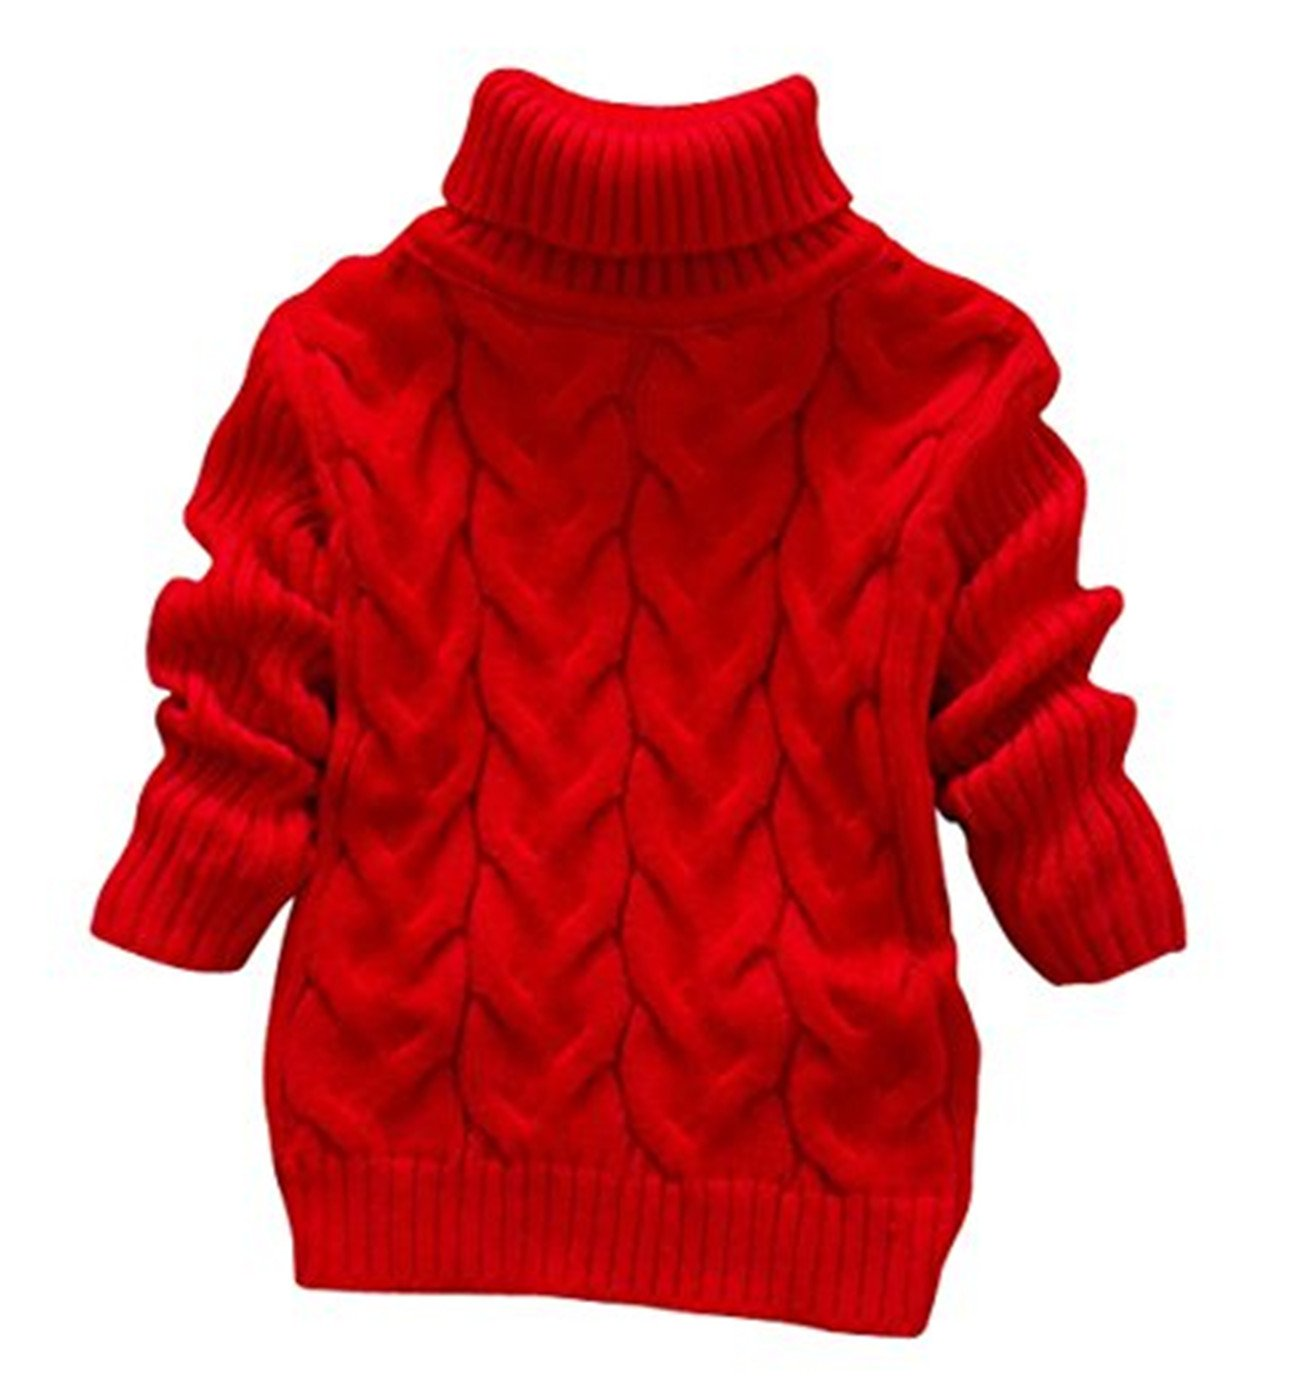 JELEUON Little Girls Baby Solid Color Turtleneck Sweater Soft Knit Warm Sweatshirt BSW3TD154